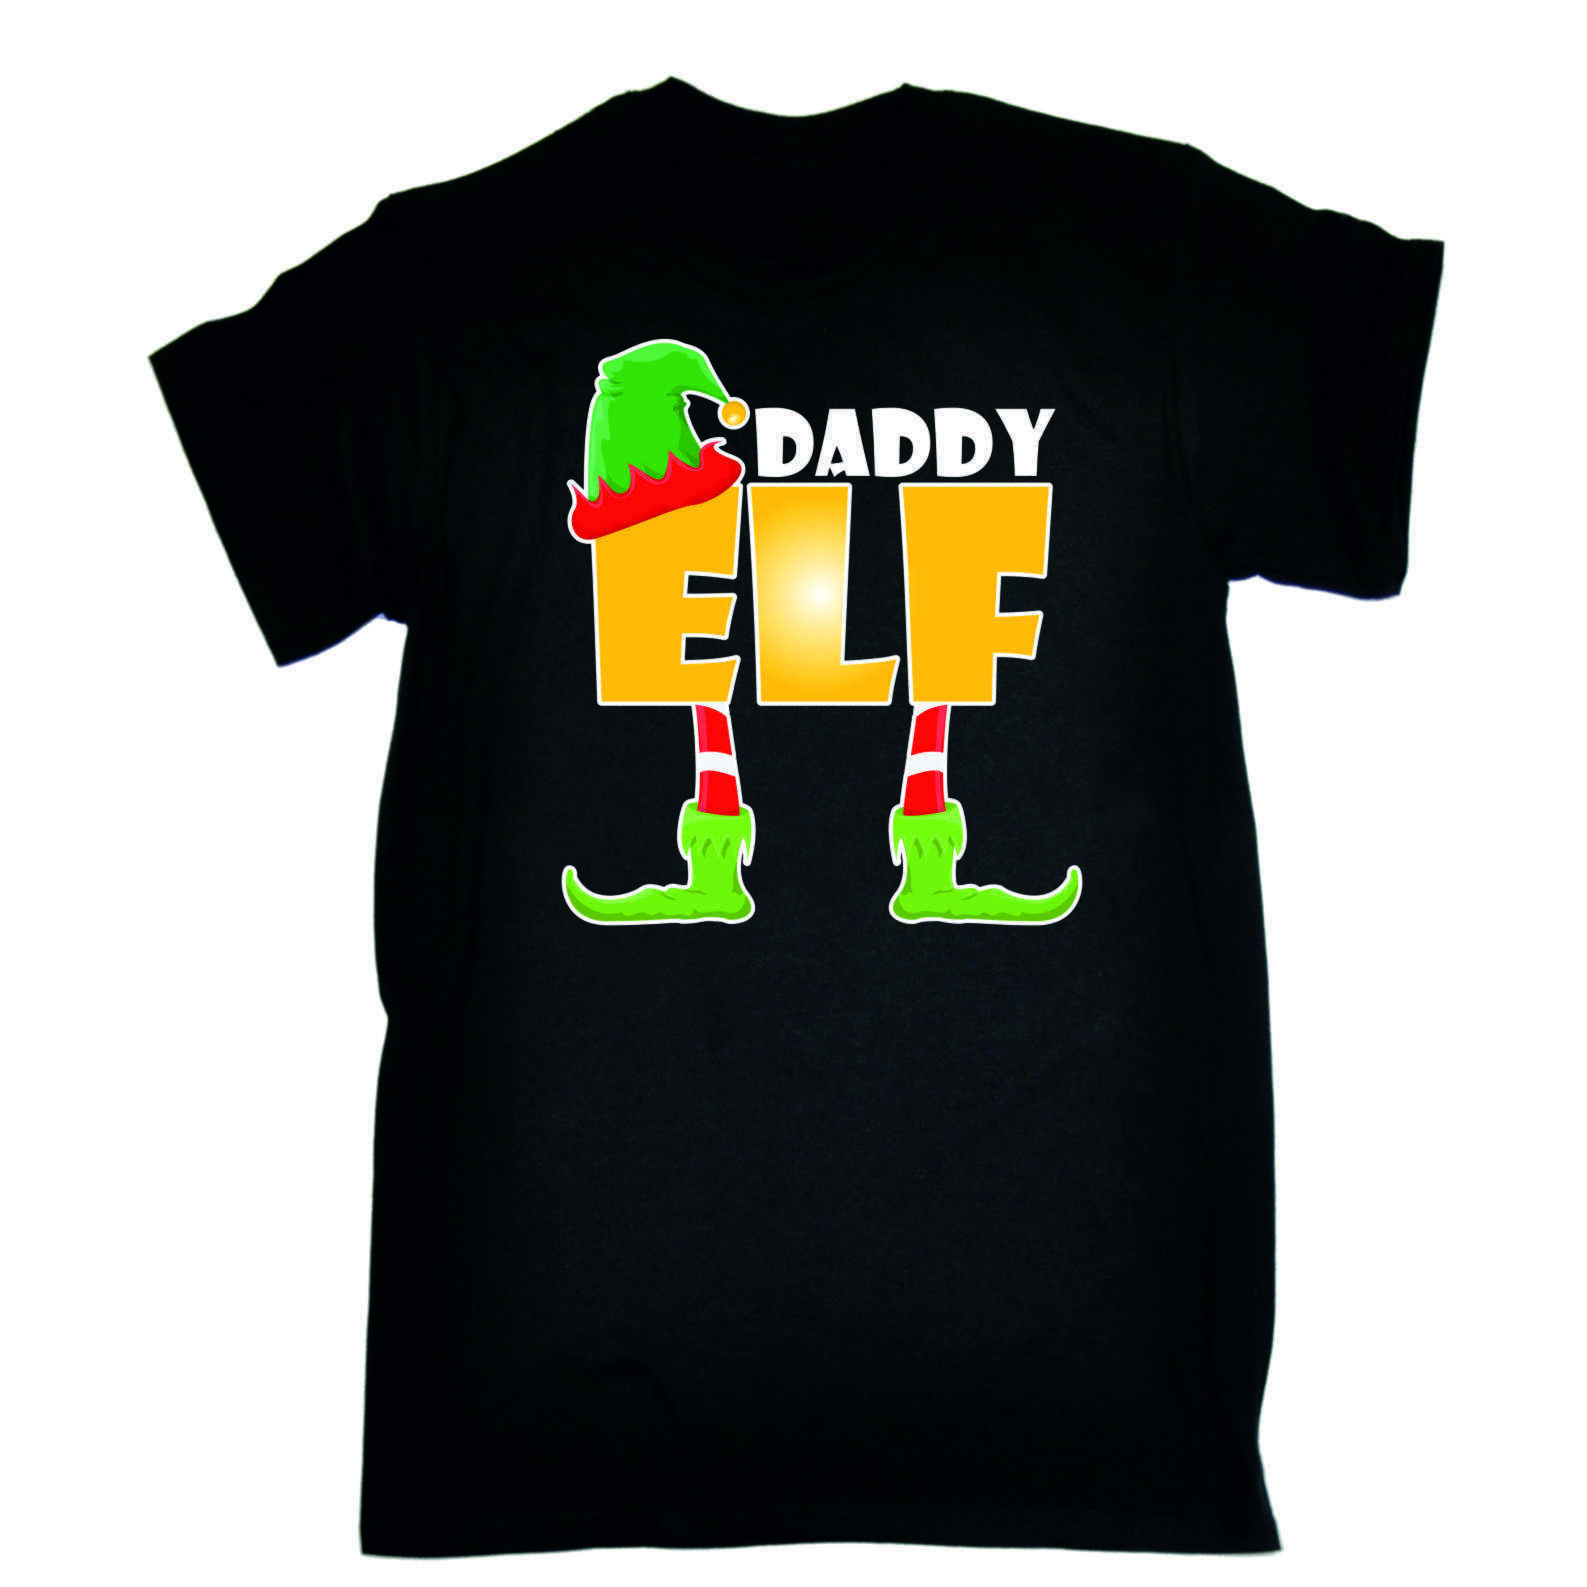 50942026 ELF Family Christmas T-Shirts - Novelty Funny X-mas Day Black Loose Fit T  Shirt Funny Unisex Casual Tee Gift Free Shipping Unisex Funny Classic  Unique ...